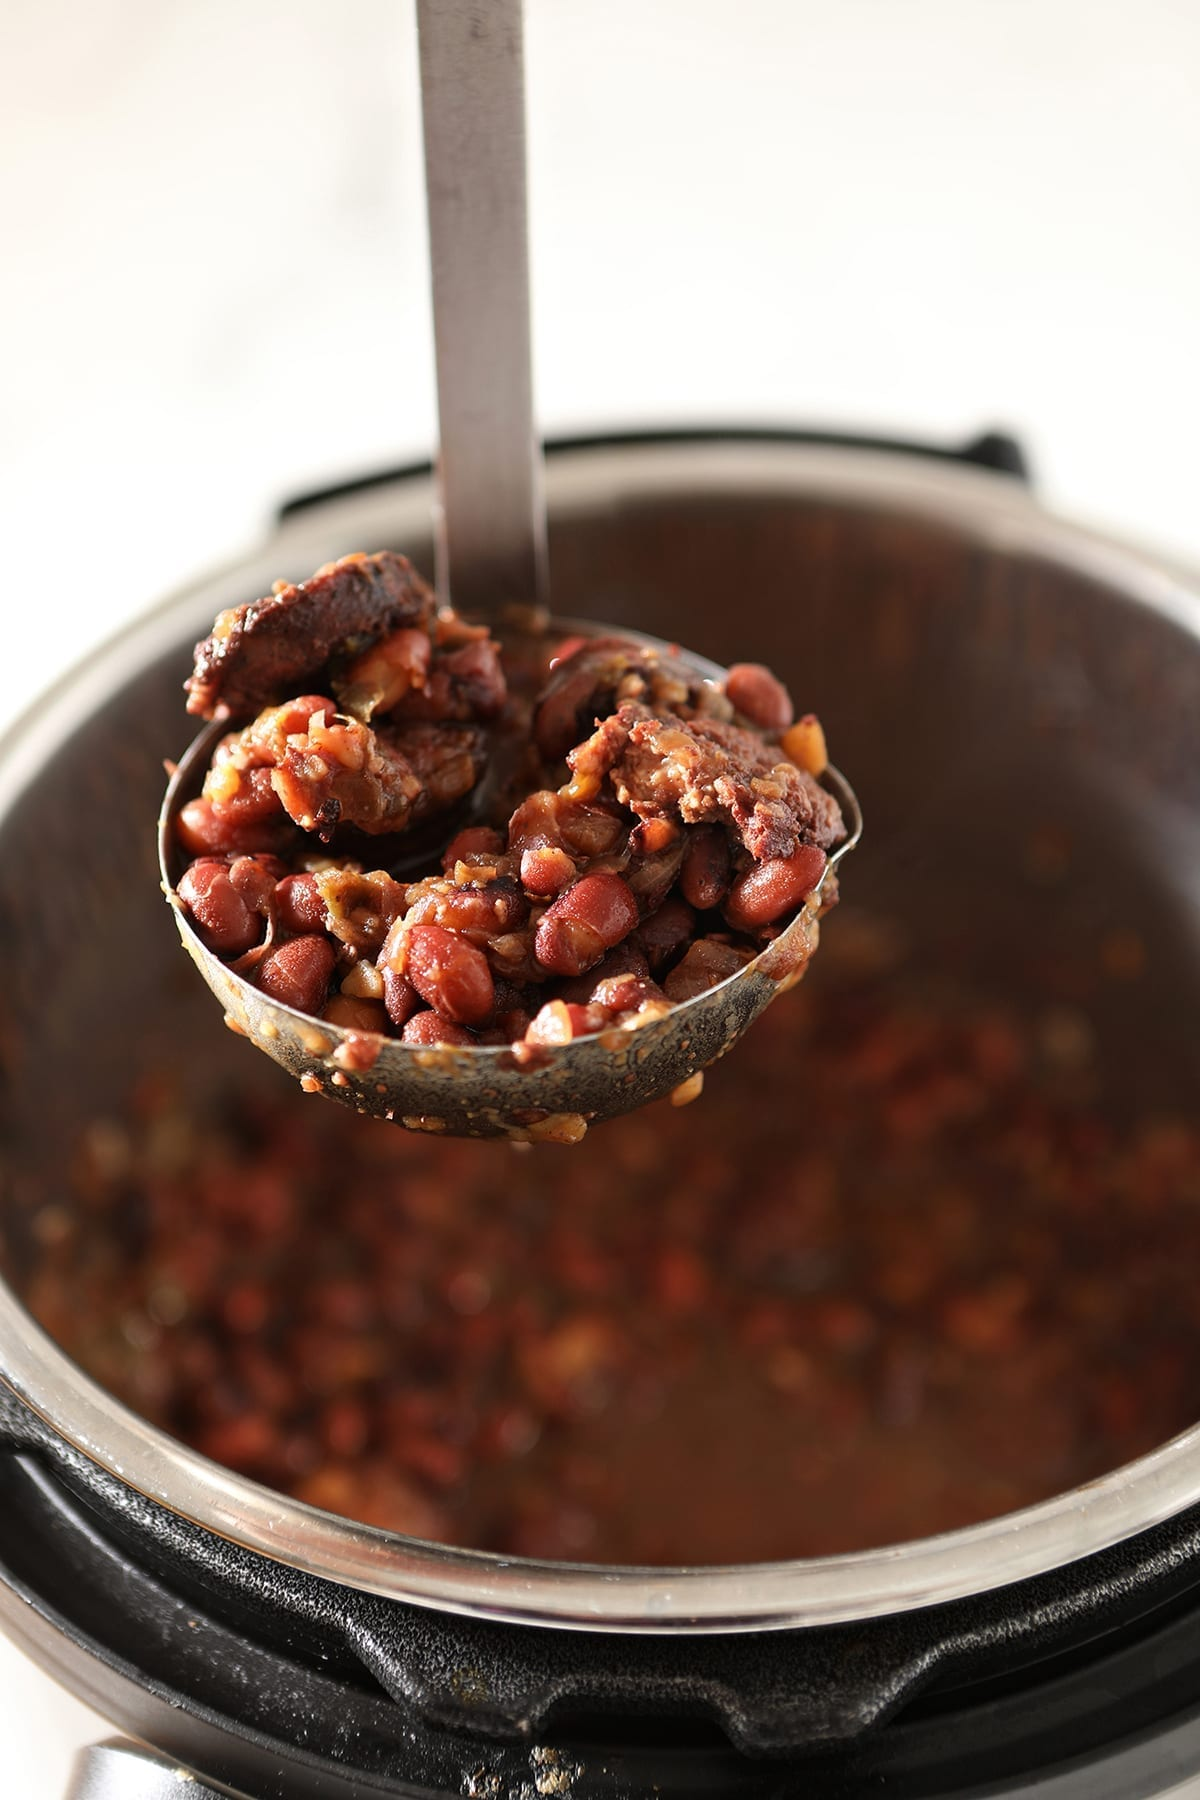 A ladle lifts red beans out of the Instant Pot, after cooking